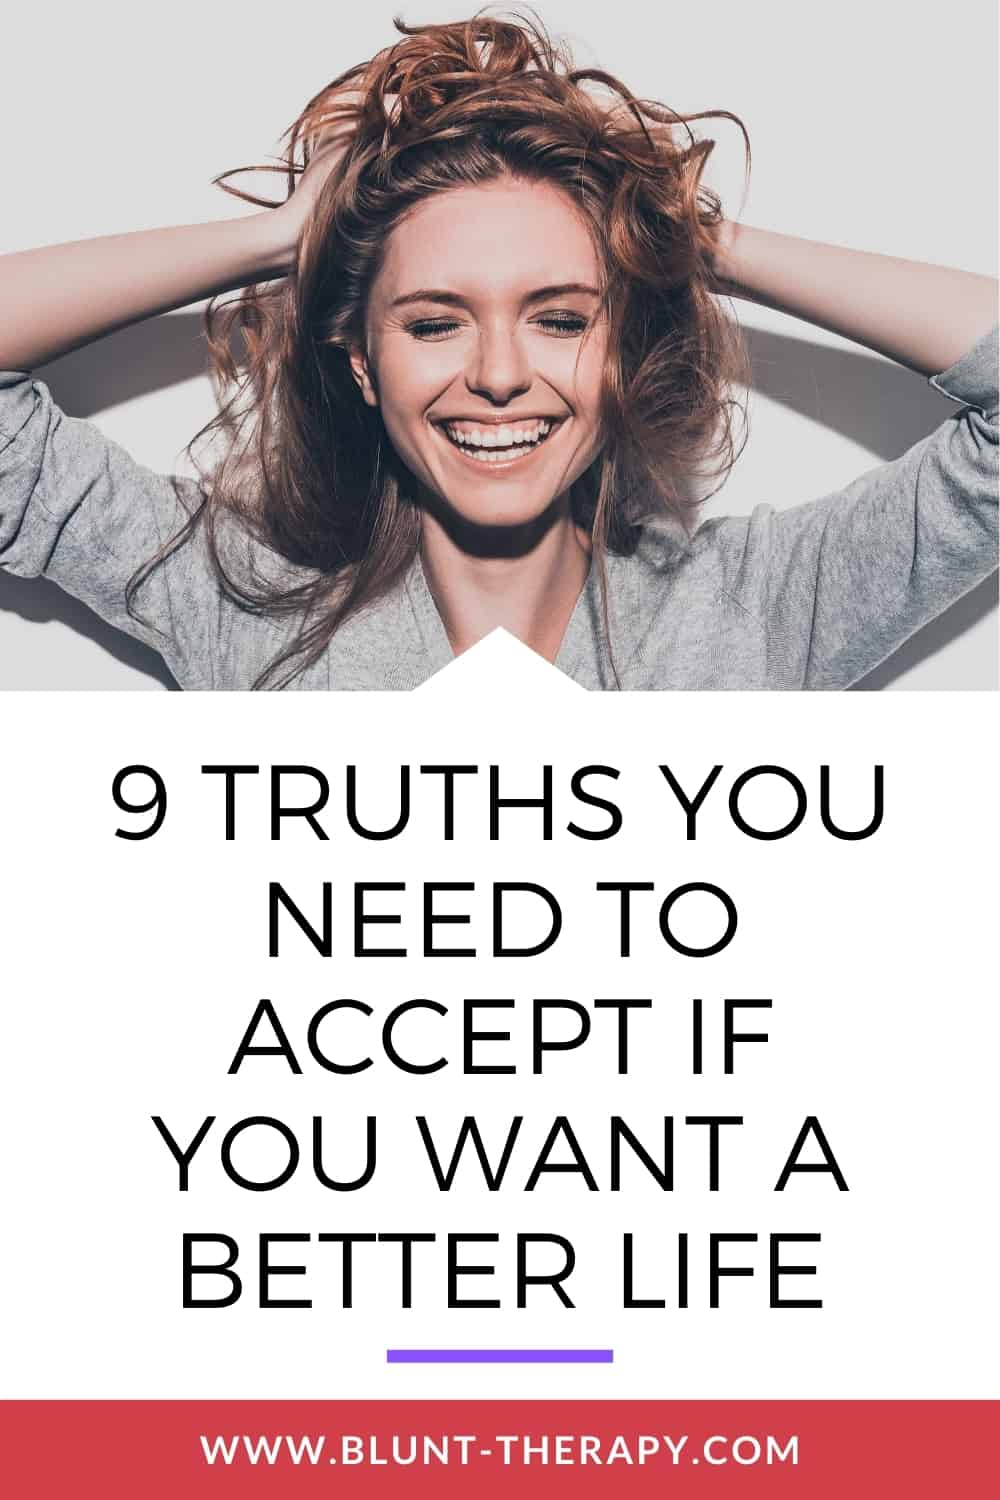 9 Truths You Need To Accept If You Want To Live A Better Life